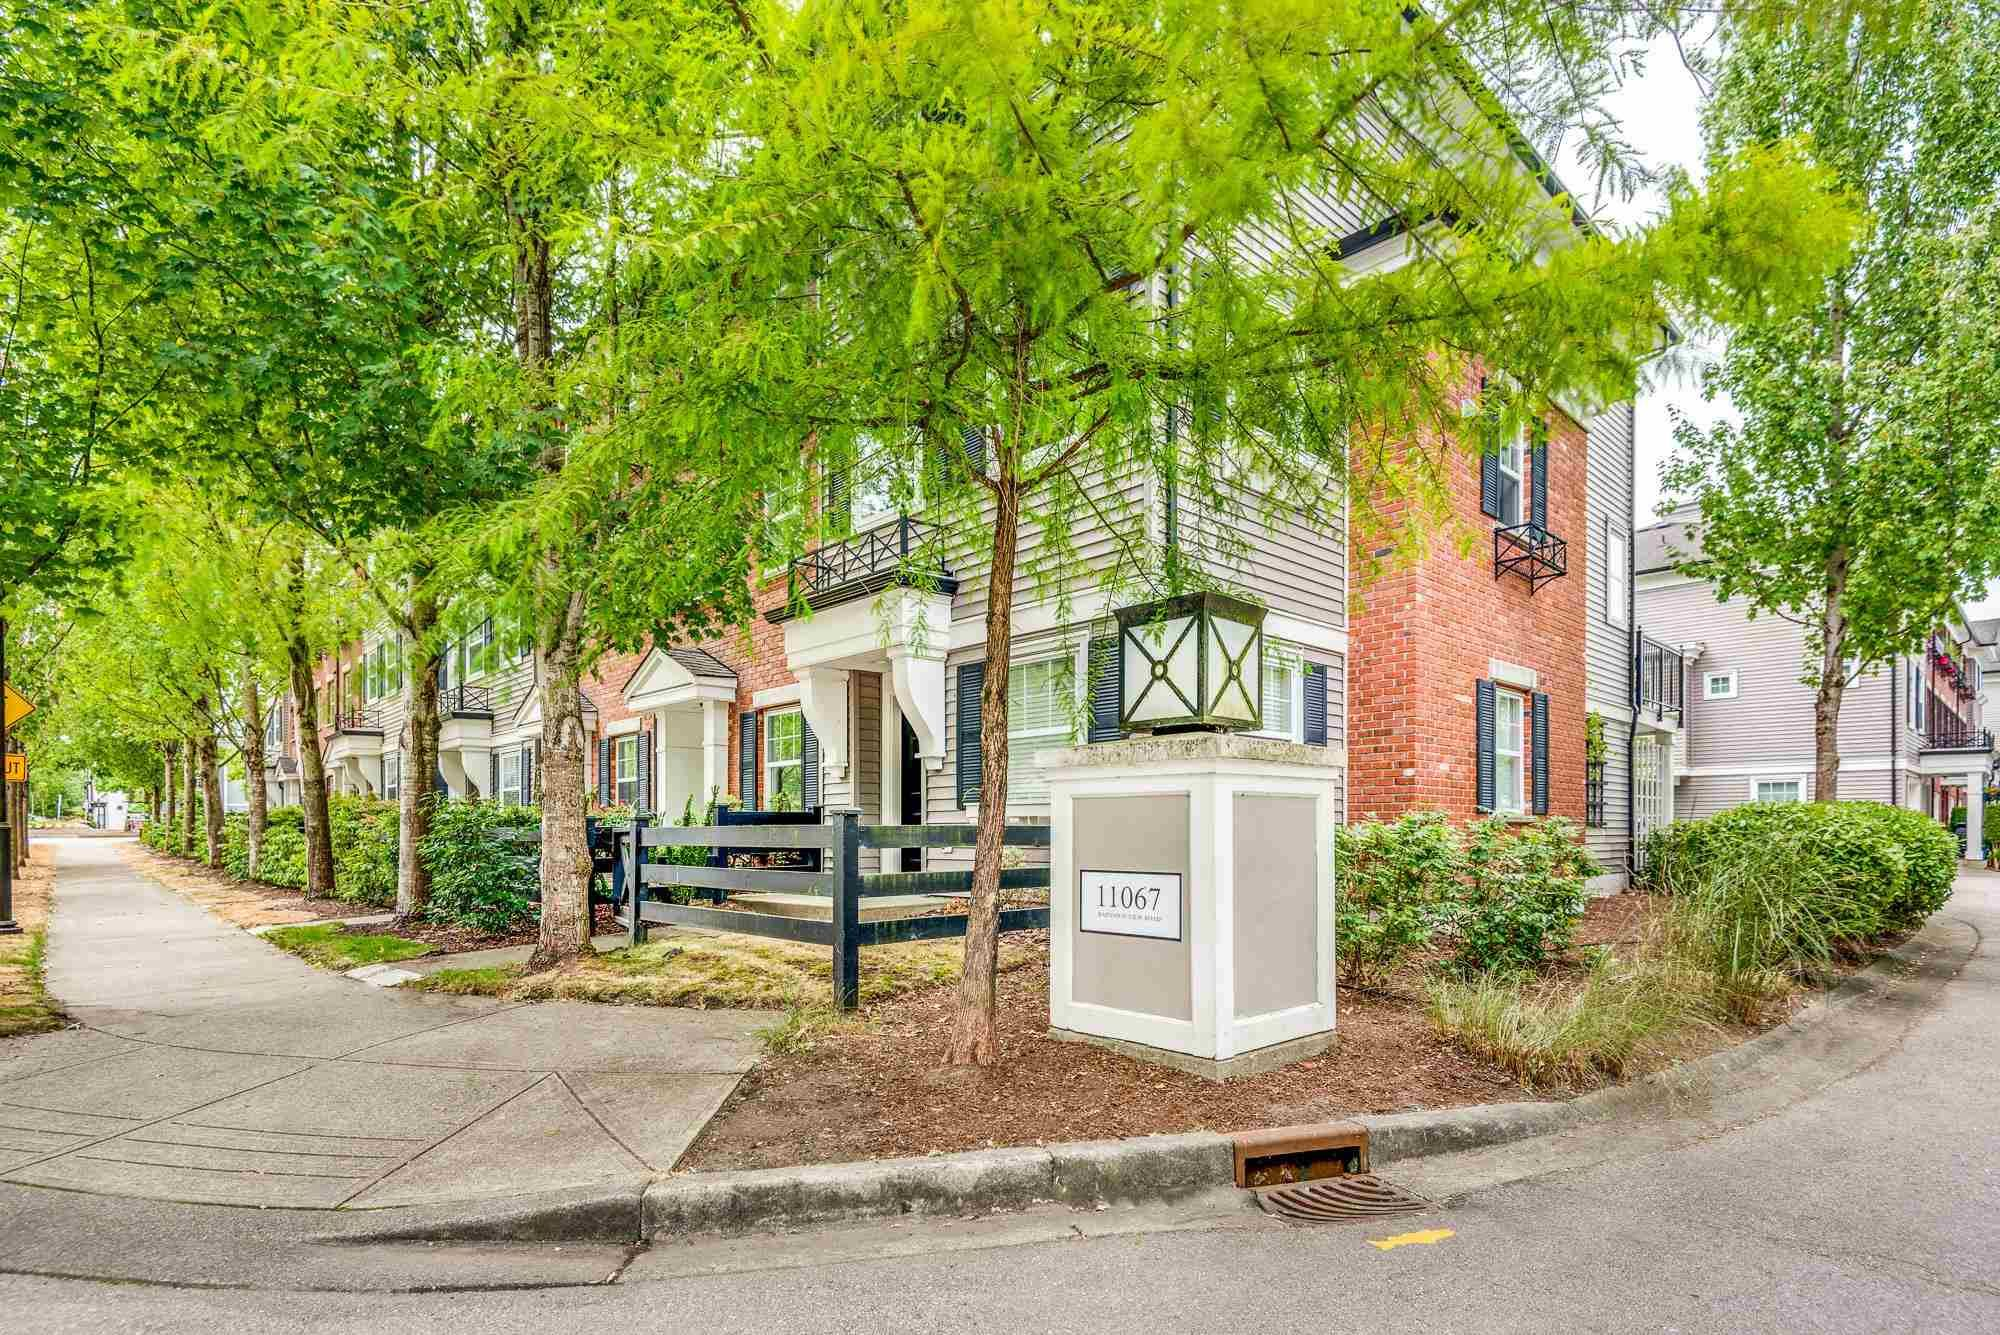 """Main Photo: 55 11067 BARNSTON VIEW Road in Pitt Meadows: South Meadows Townhouse for sale in """"COHO 1"""" : MLS®# R2603358"""